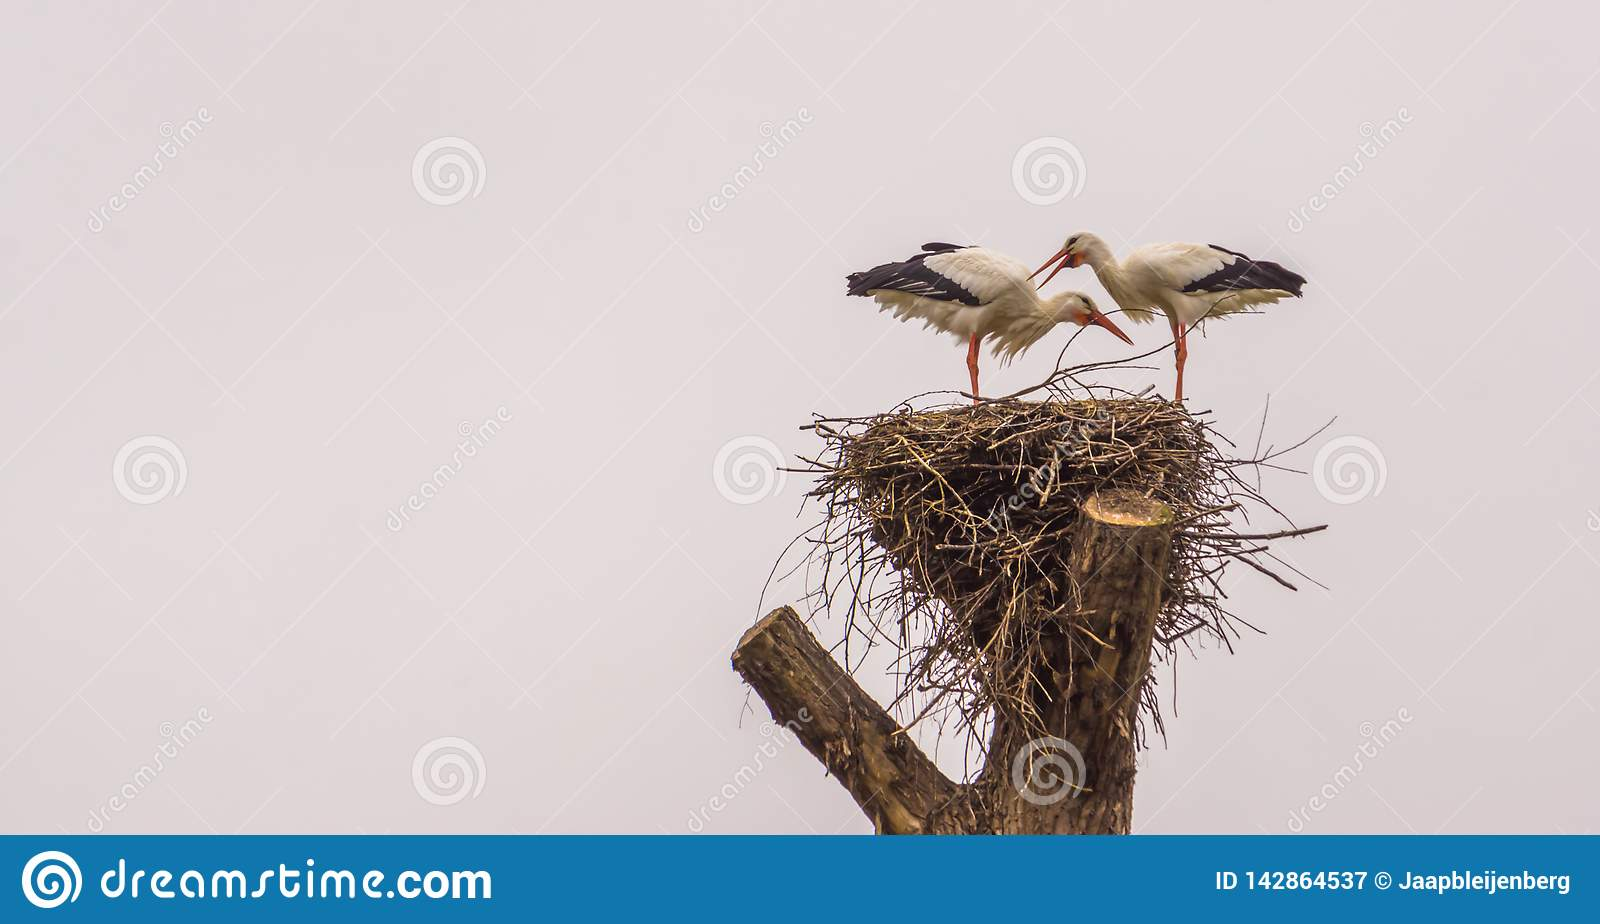 White stork couple standing together in their nest, common bird in europe, Migrated birds from Africa